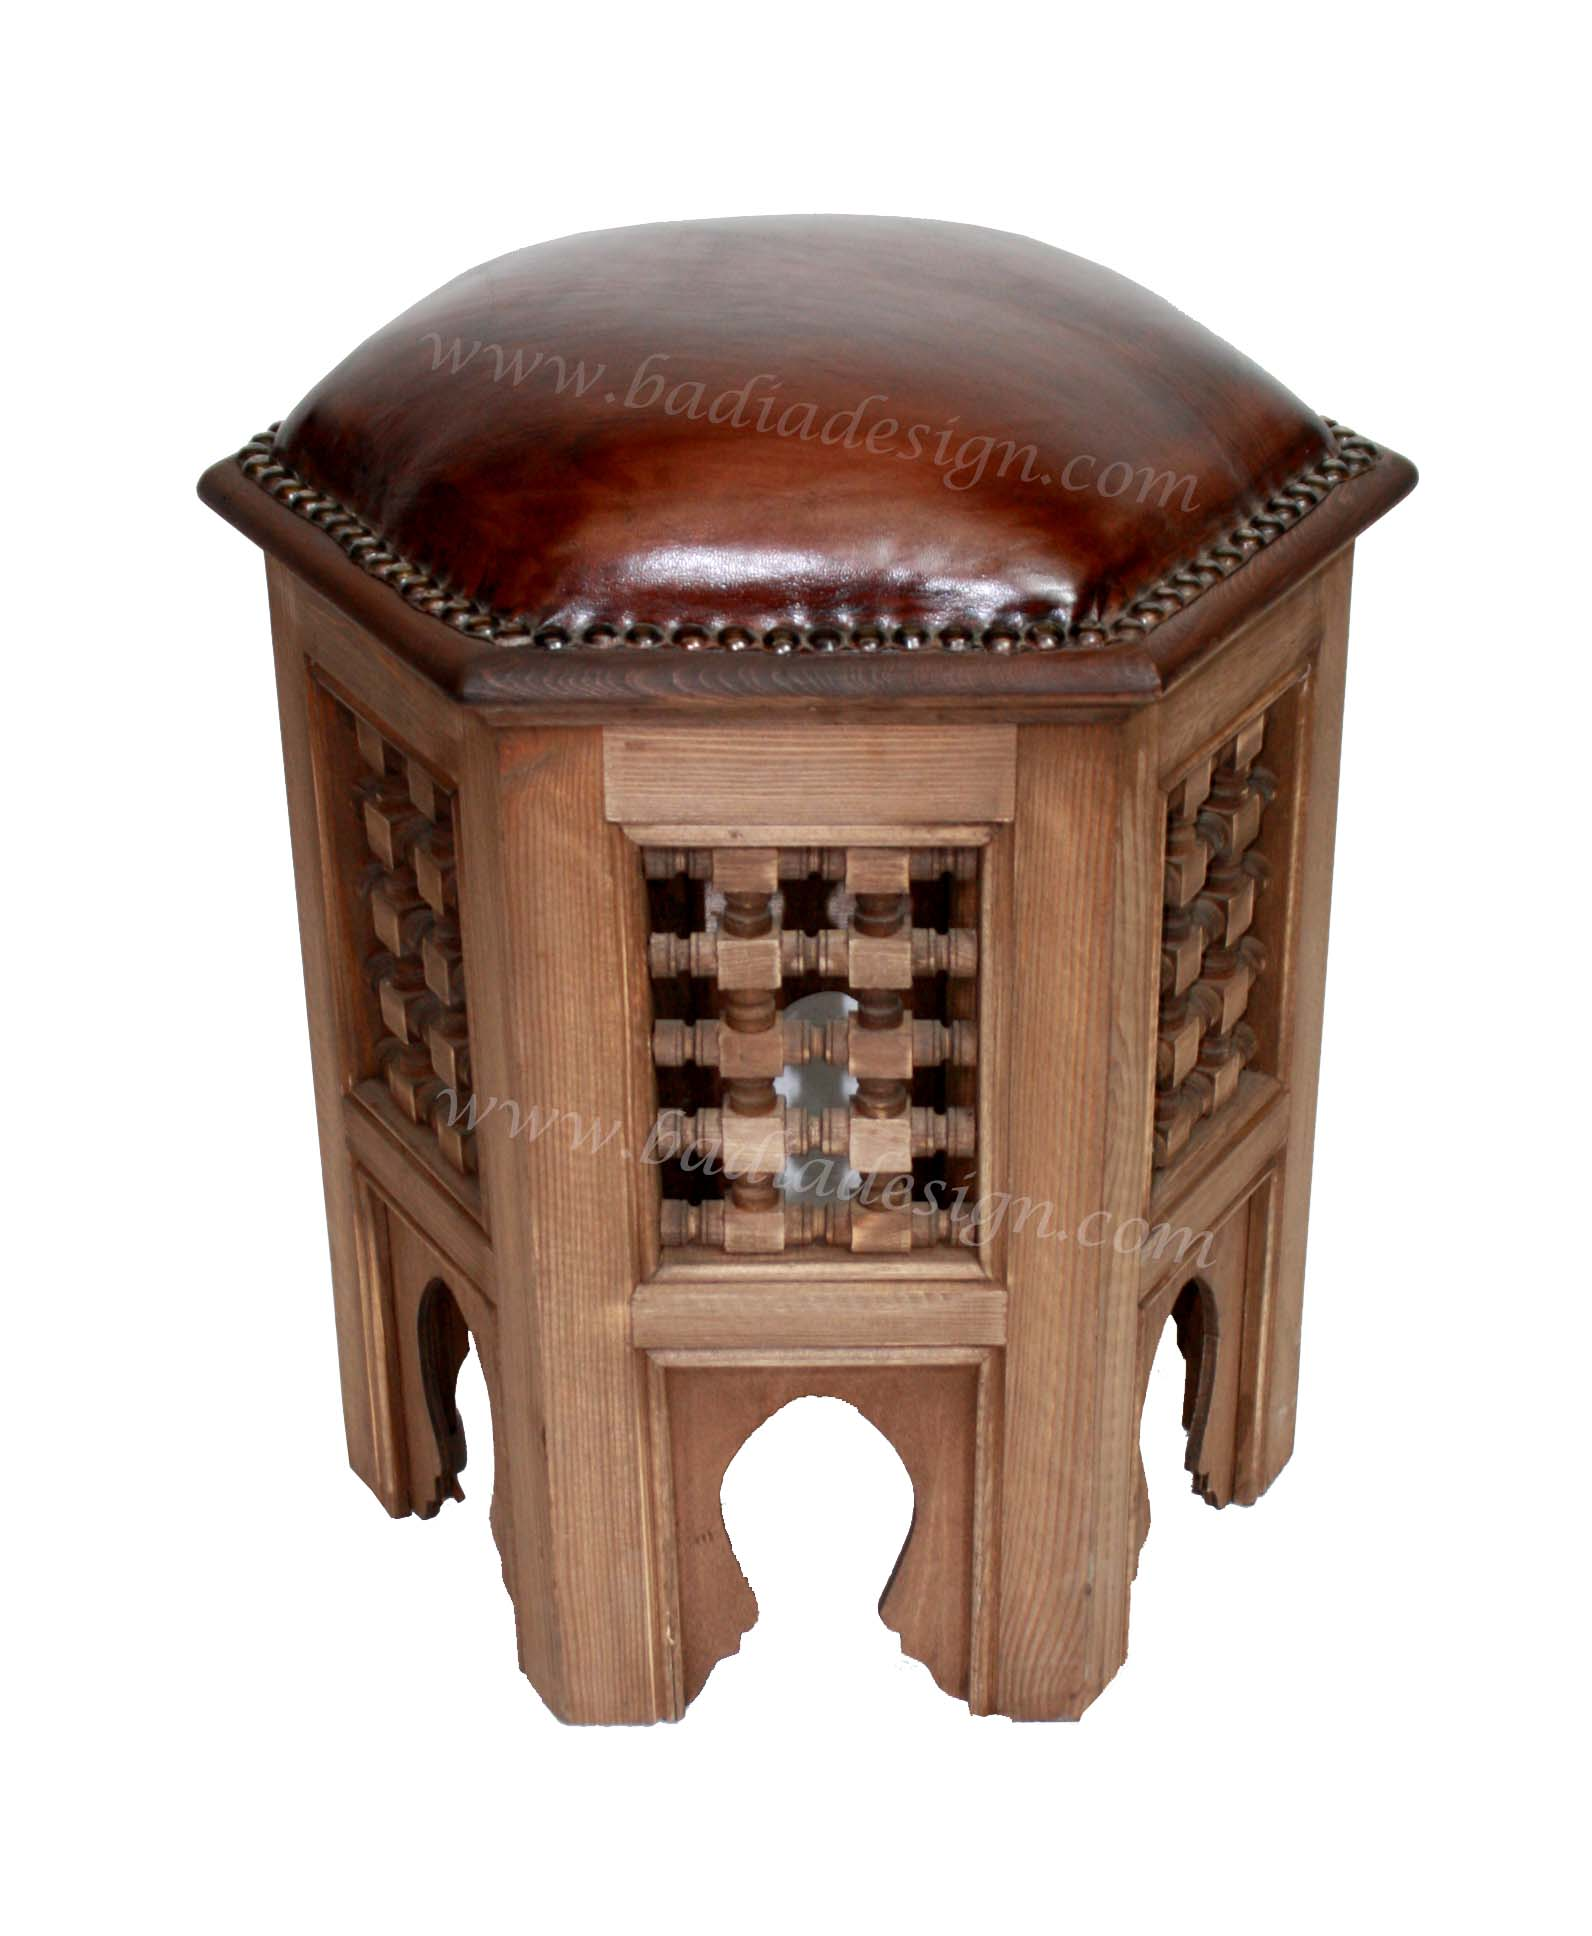 Moroccan Carved Wood Brown Leather Ottoman